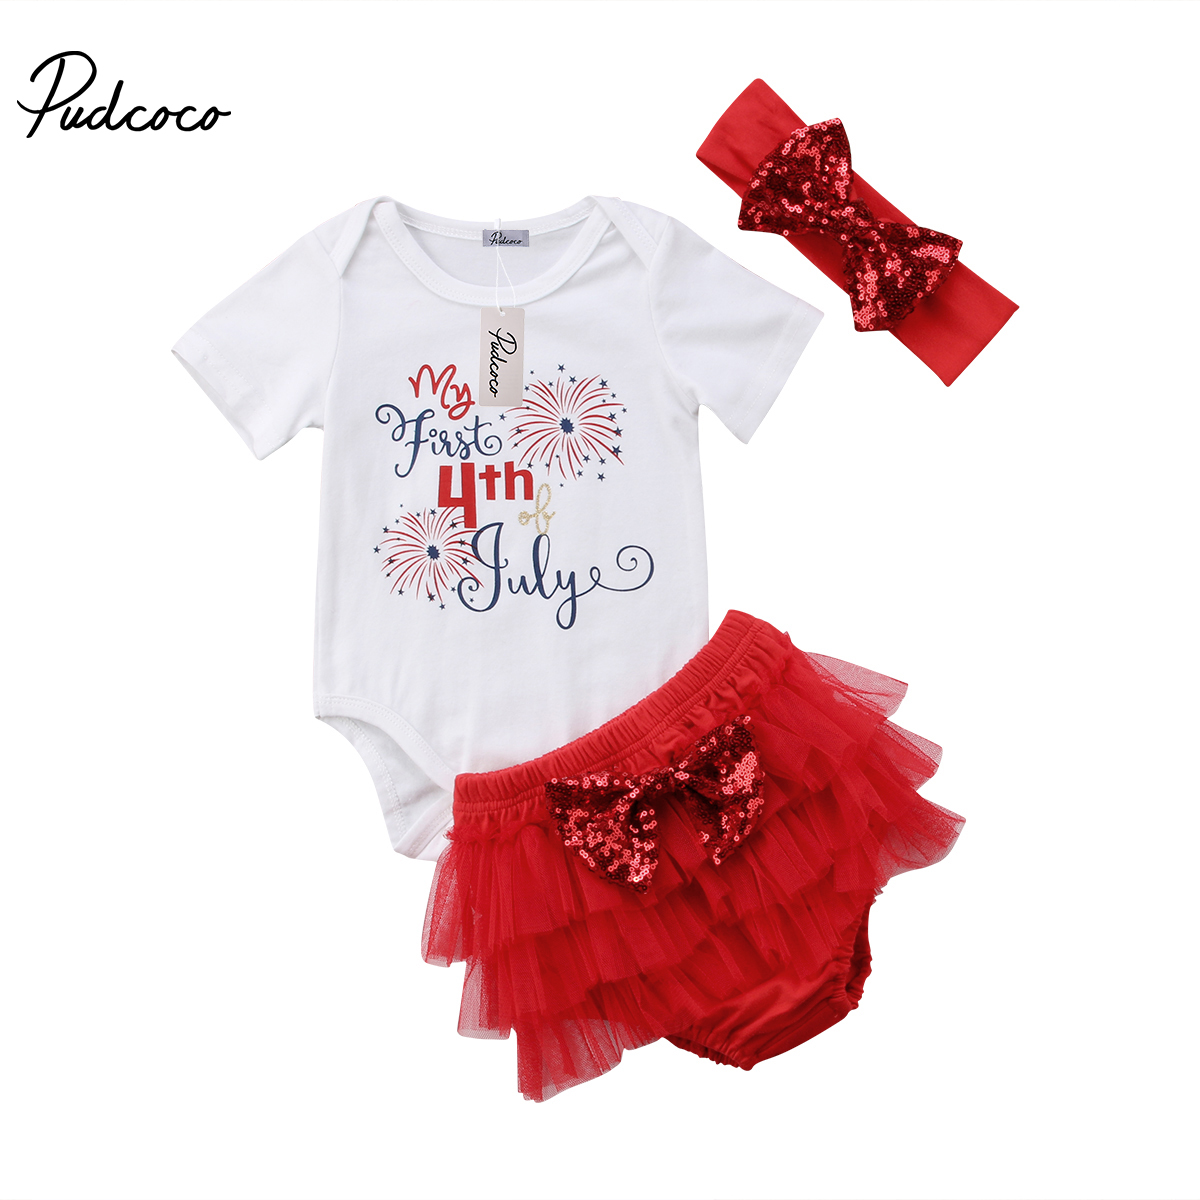 Pudcoco 4th of july Newborn Baby Boy Girl 3pcs Outfits Cotton Romper + Short Ruffle Pants Headband Clothes Set 3pcs set cute newborn baby girl clothes 2017 worth the wait baby bodysuit romper ruffles tutu skirted shorts headband outfits